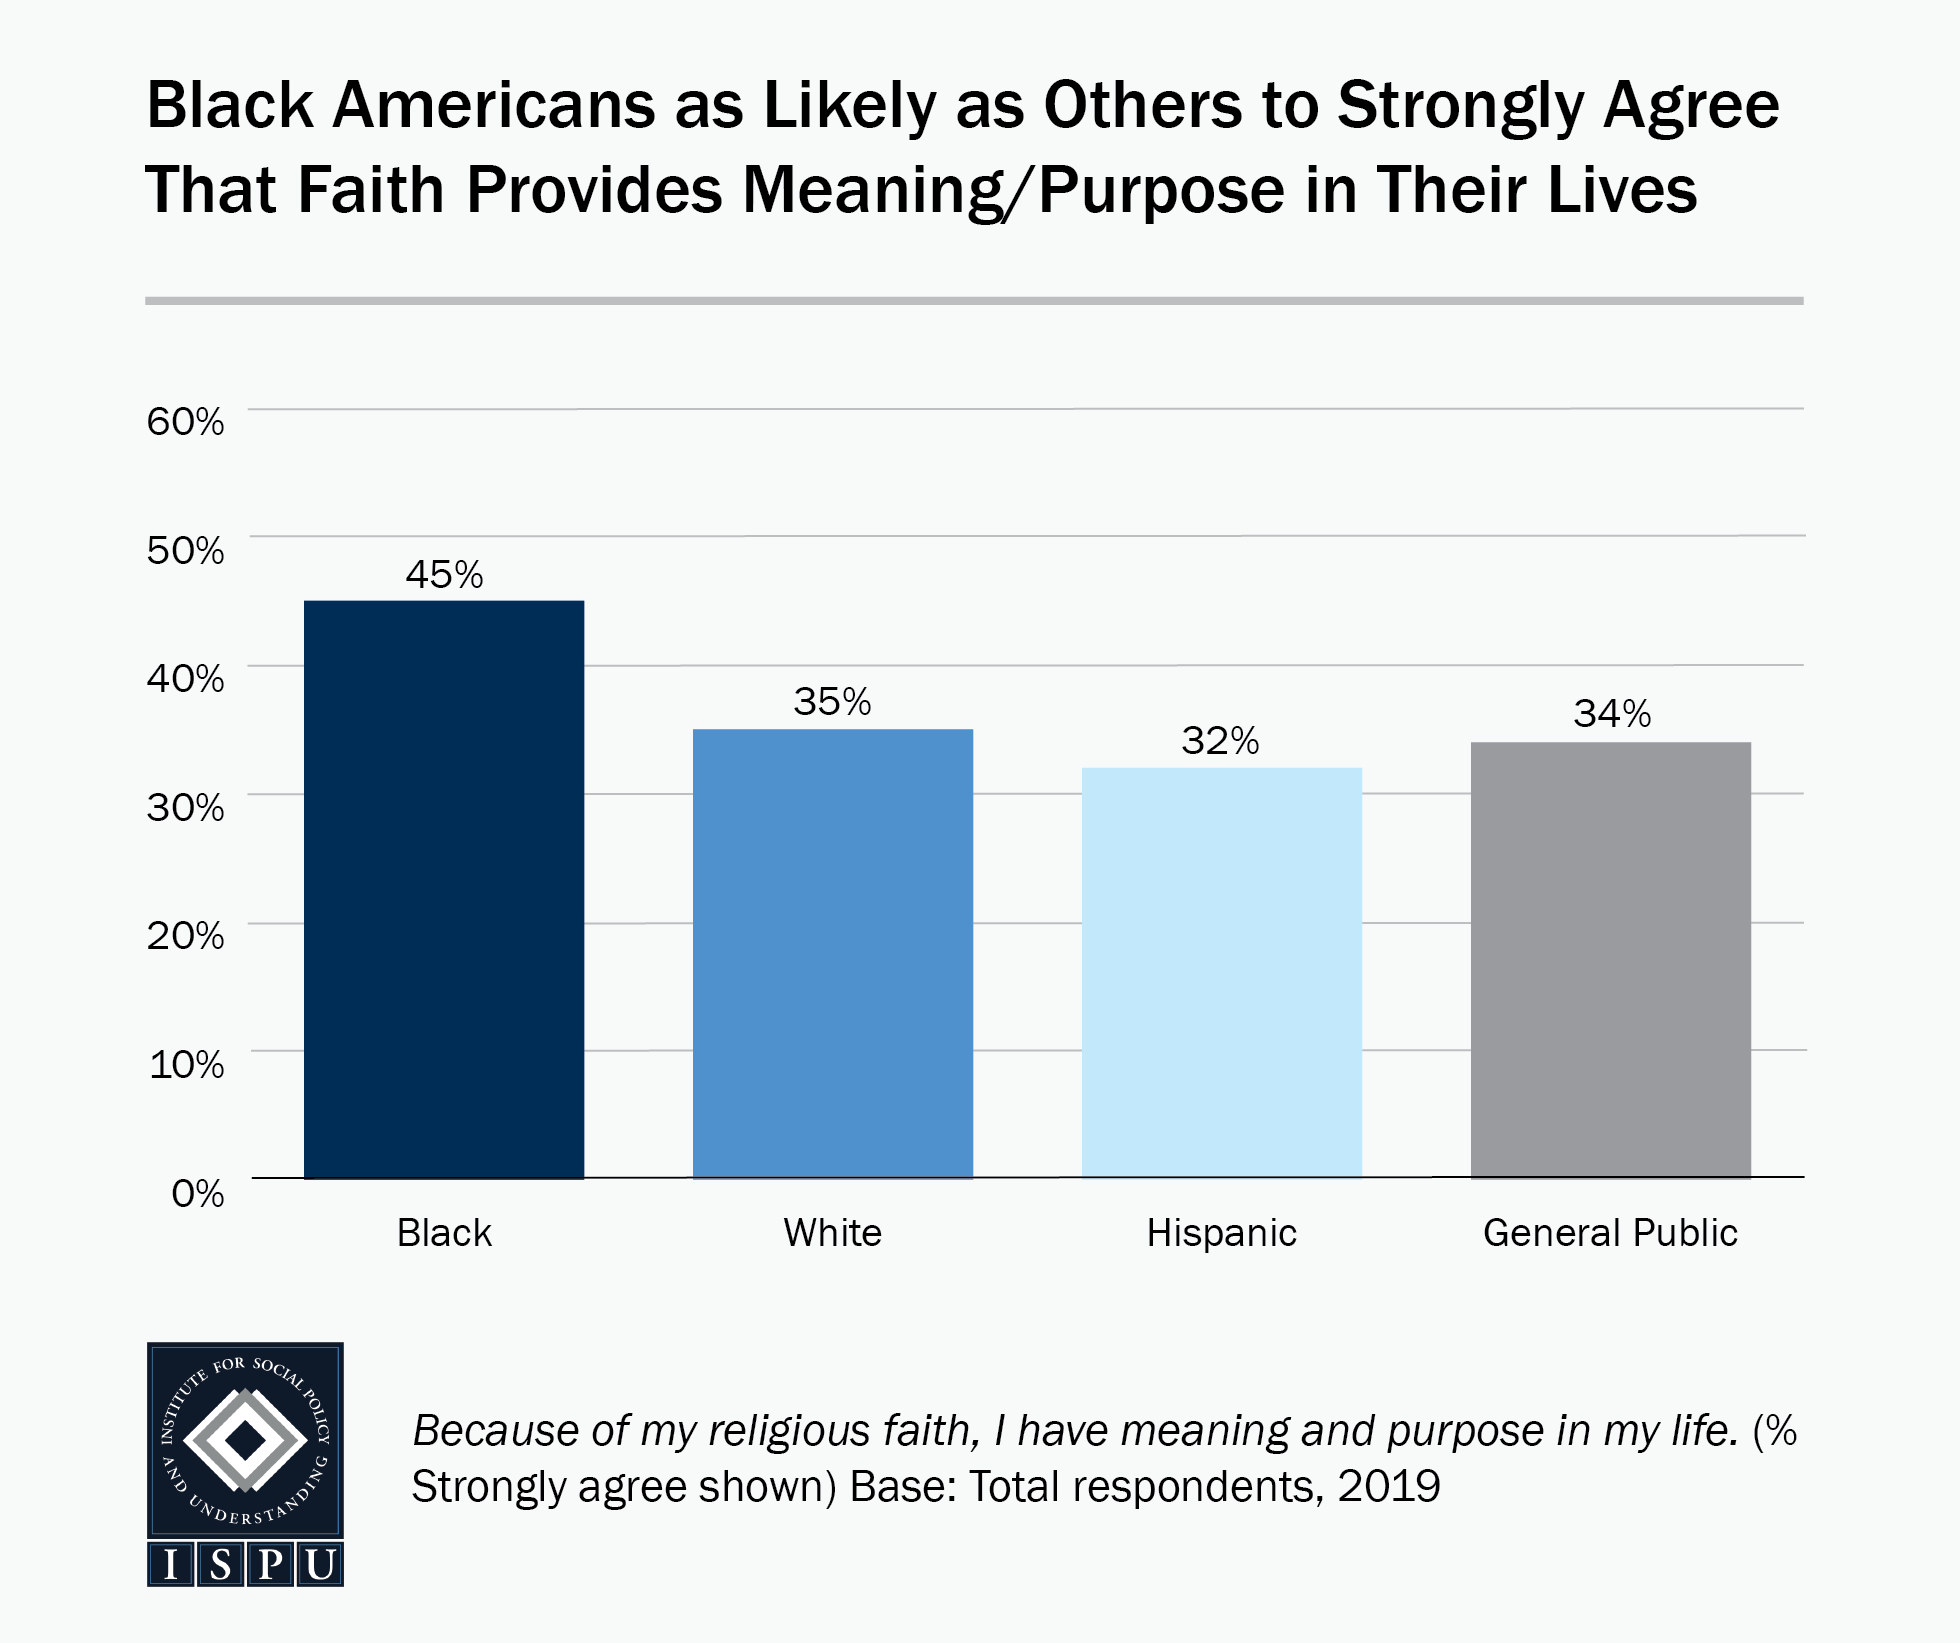 Bar graph showing that Black Americans (45%) are as likely as others (32%-35%) to strongly agree that faith provides meaning and purpose in their lives